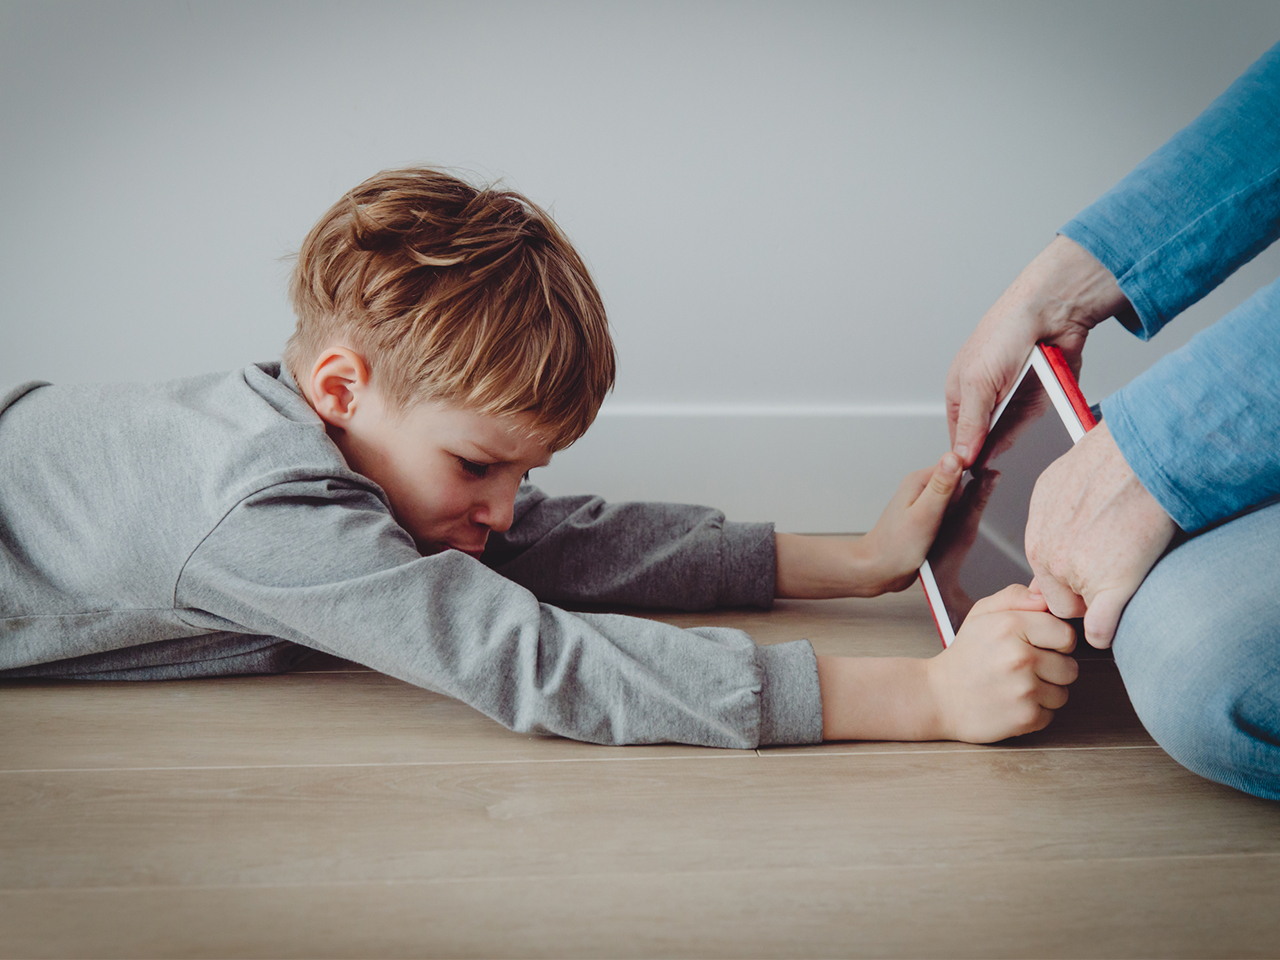 How To Keep Your Children Busy At Home Without Screen Time?